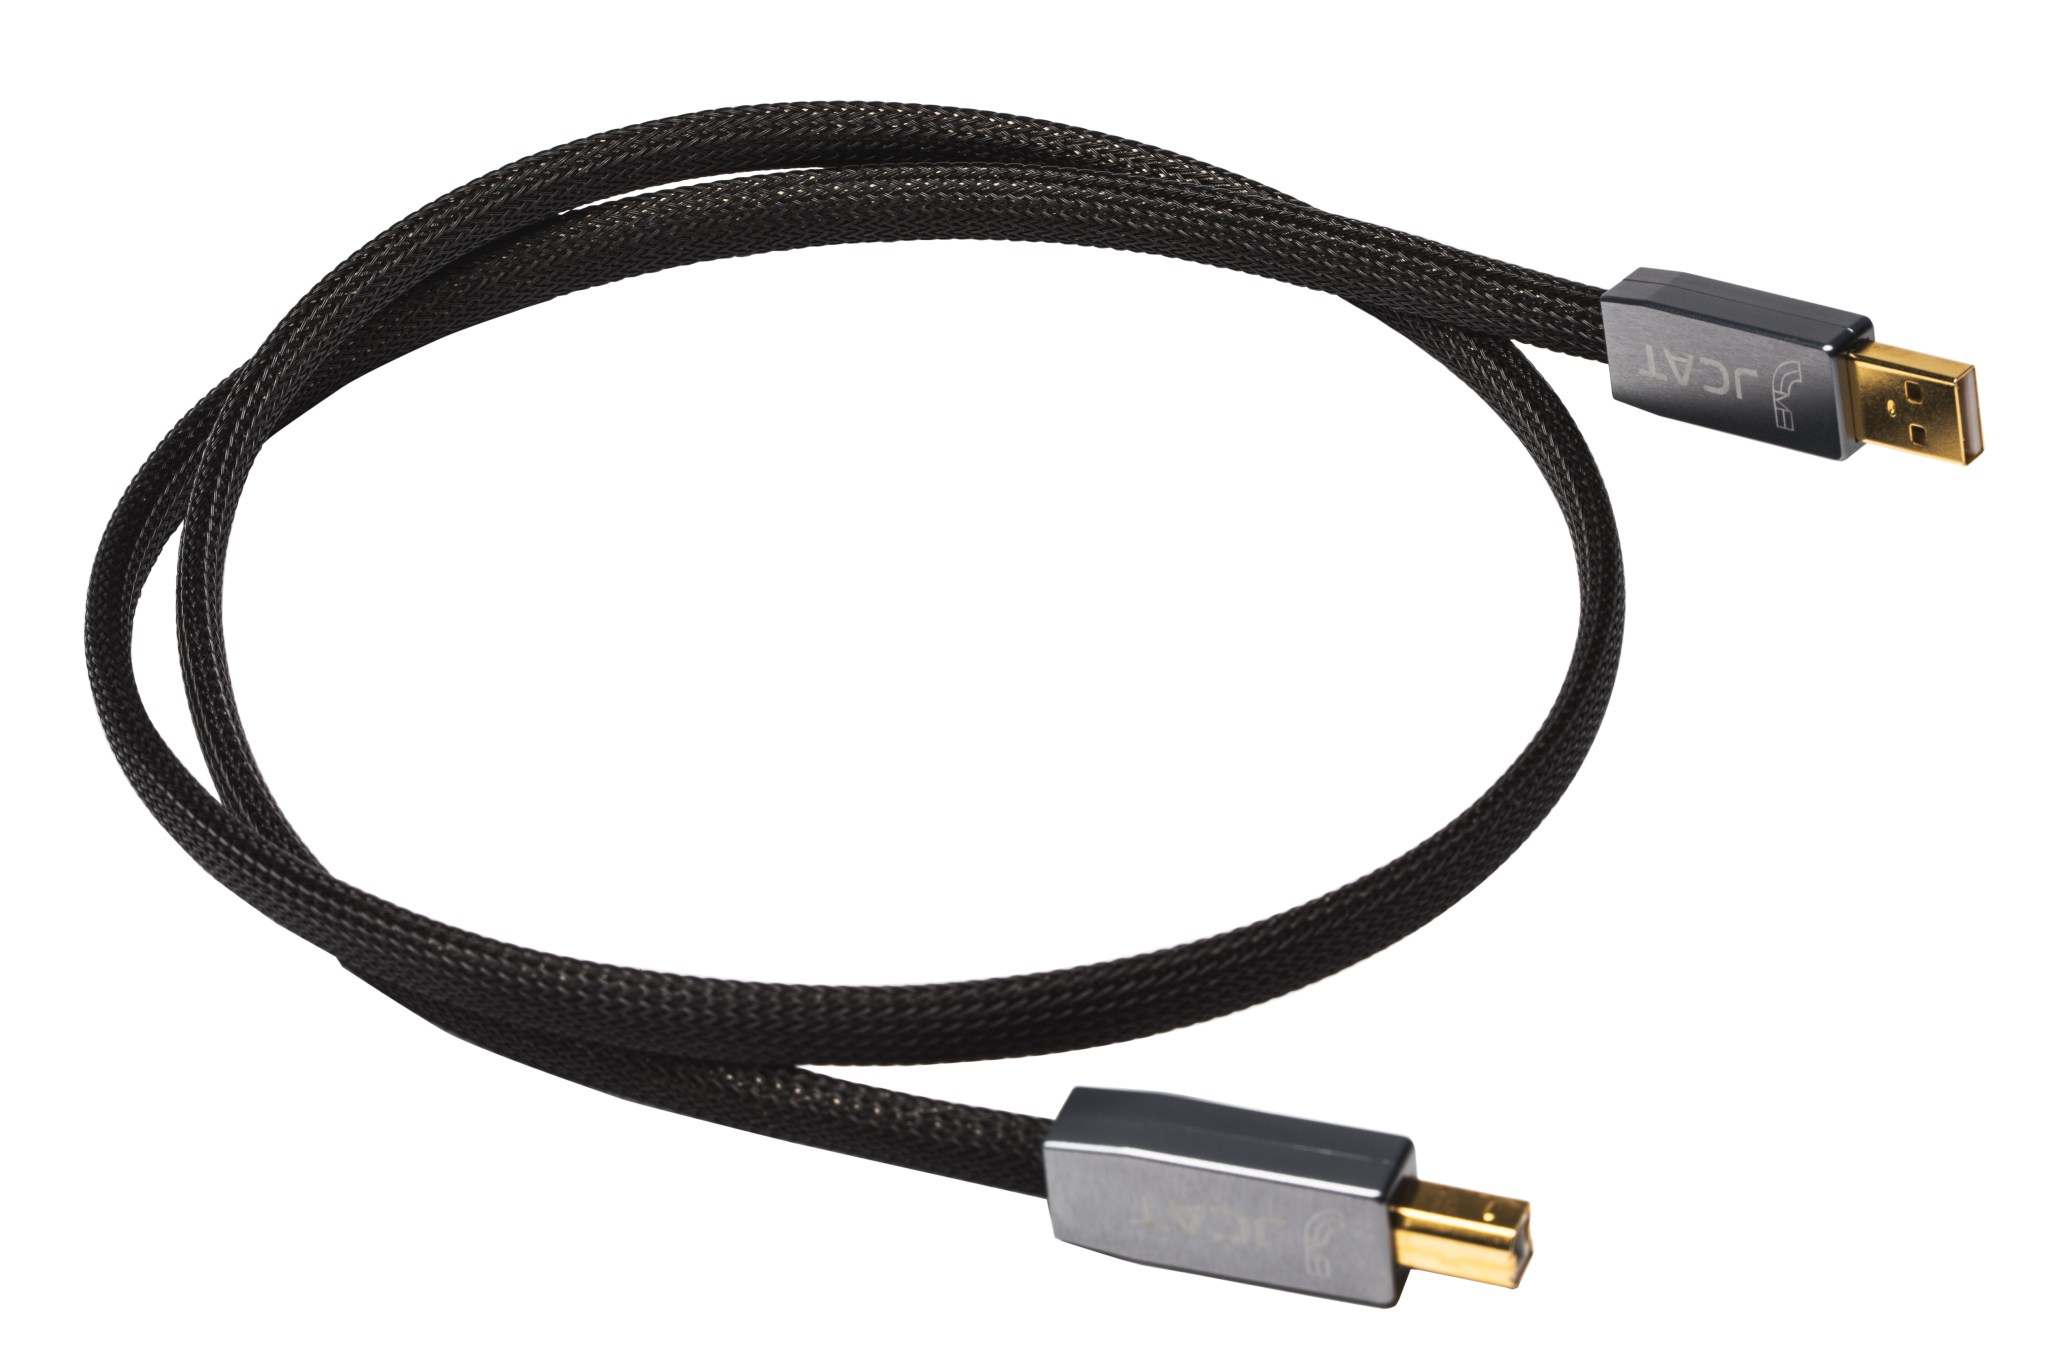 JCAT USB Cable. Hi-end digital audio interconnect for computer audiophiles